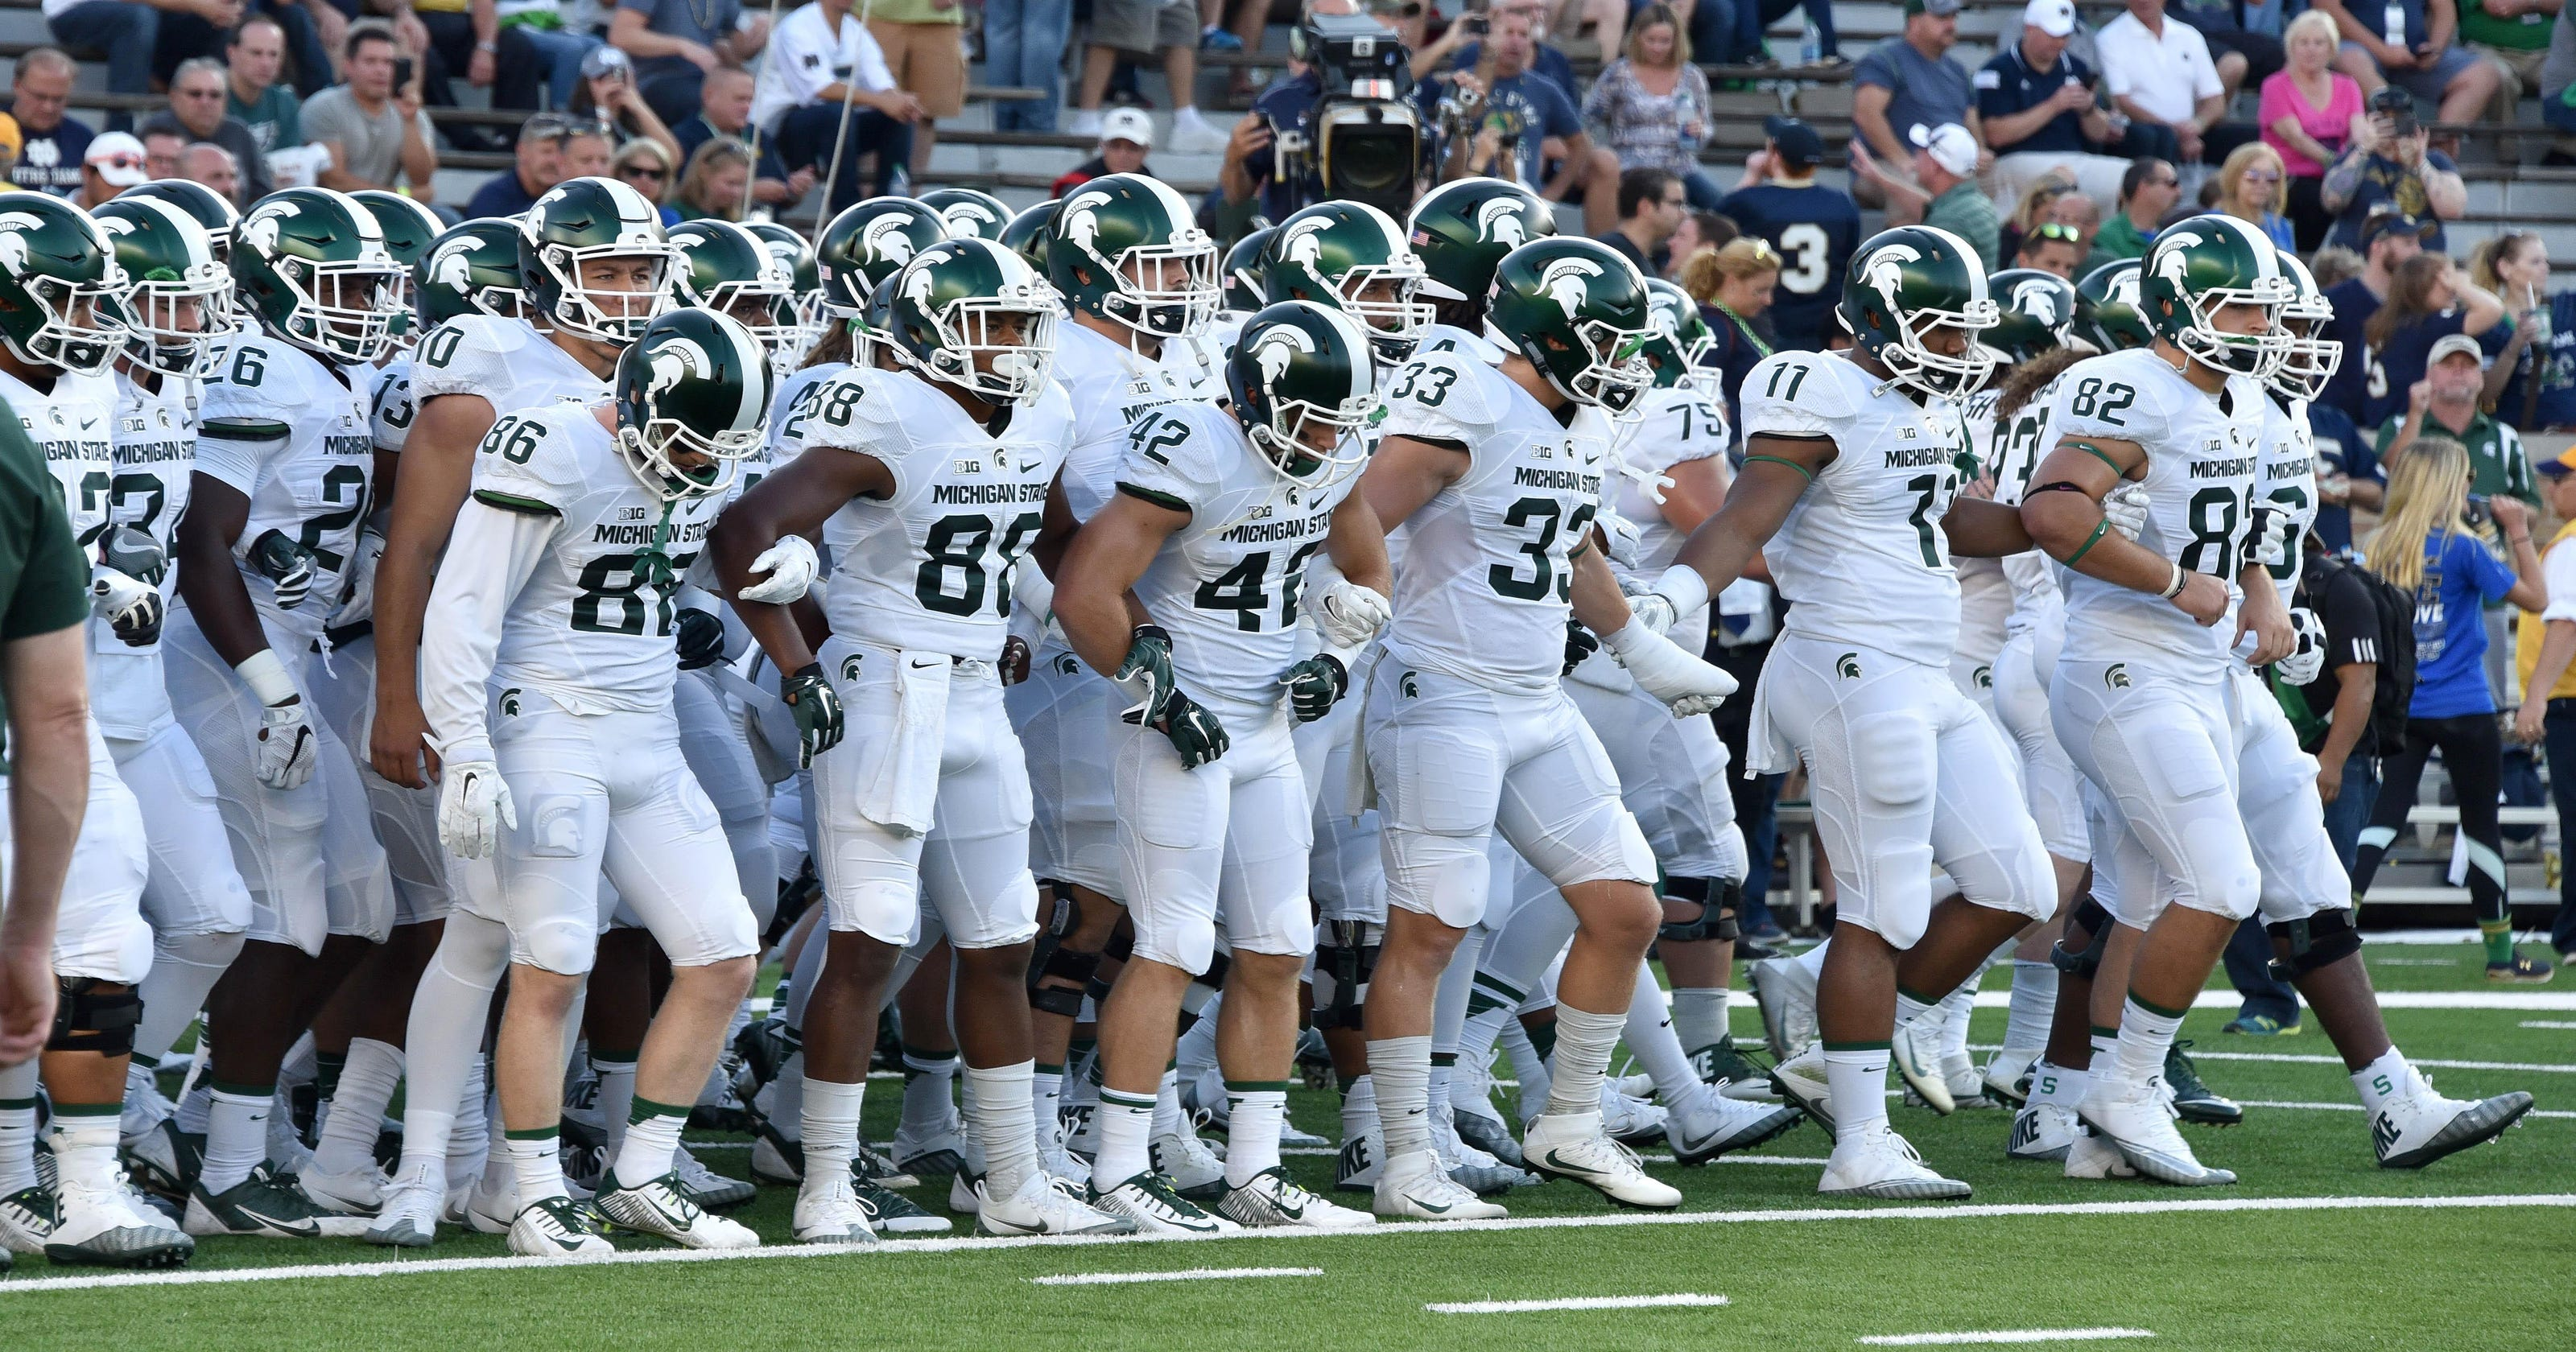 Michigan State Football Schedule 2020.Michigan State Football To Play Toledo In 2020